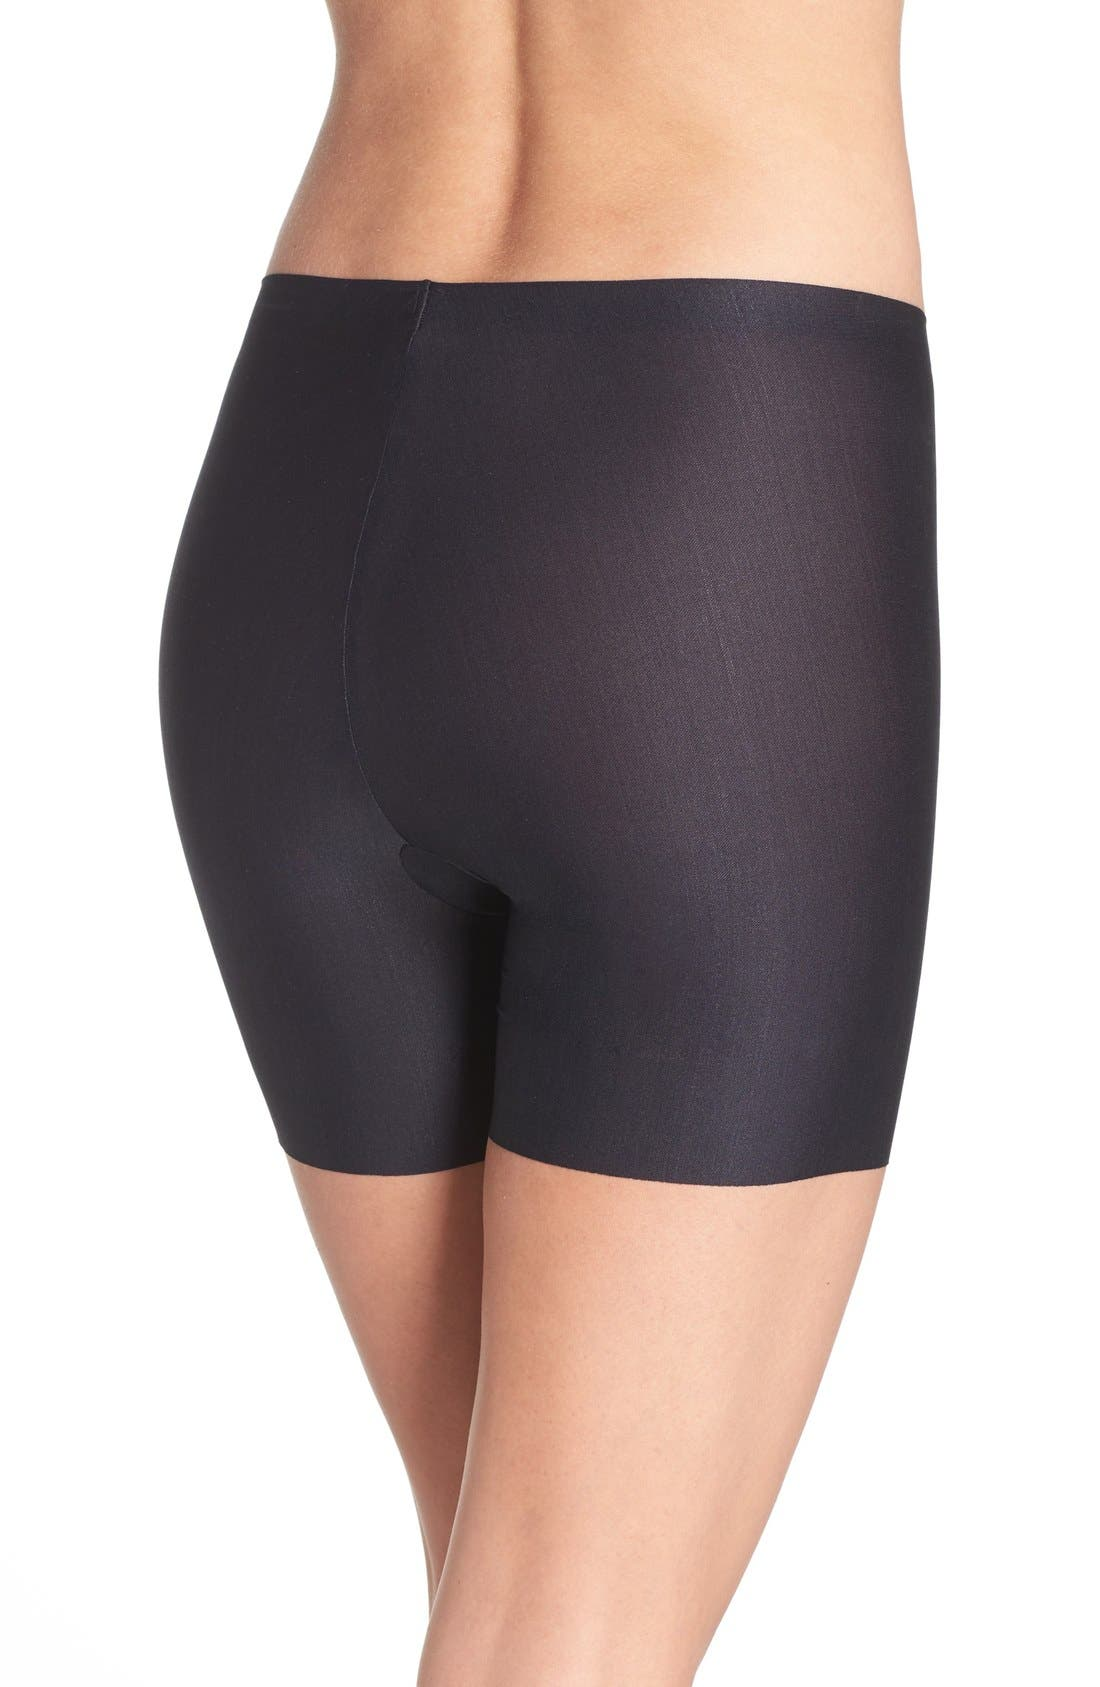 Body Base Smoothing Shorts,                             Alternate thumbnail 3, color,                             BLACK